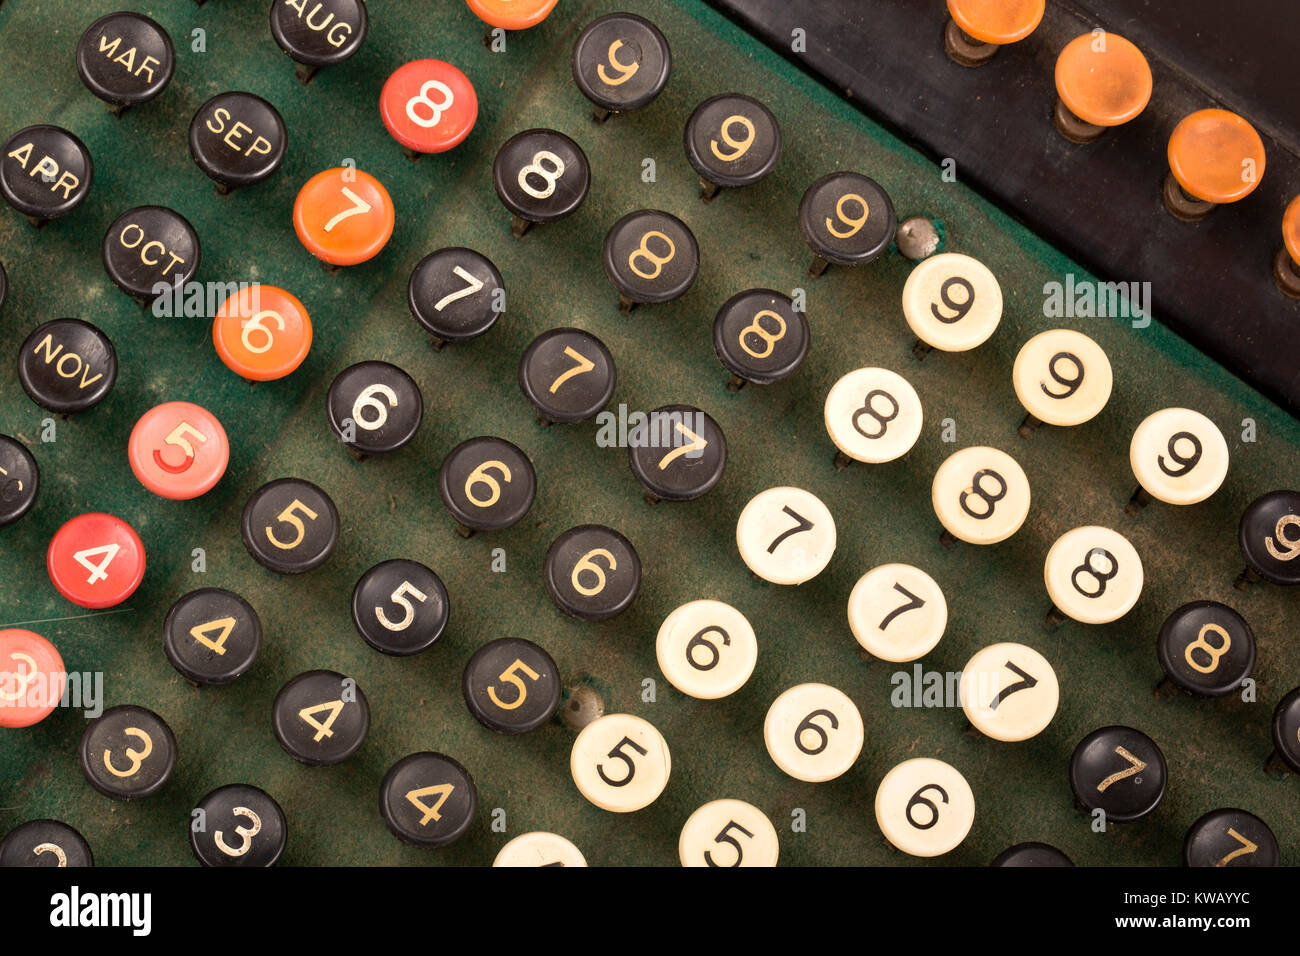 Keyboard of an early 20th century Burroughs adding machine ca: 1911-1913 - Stock Image